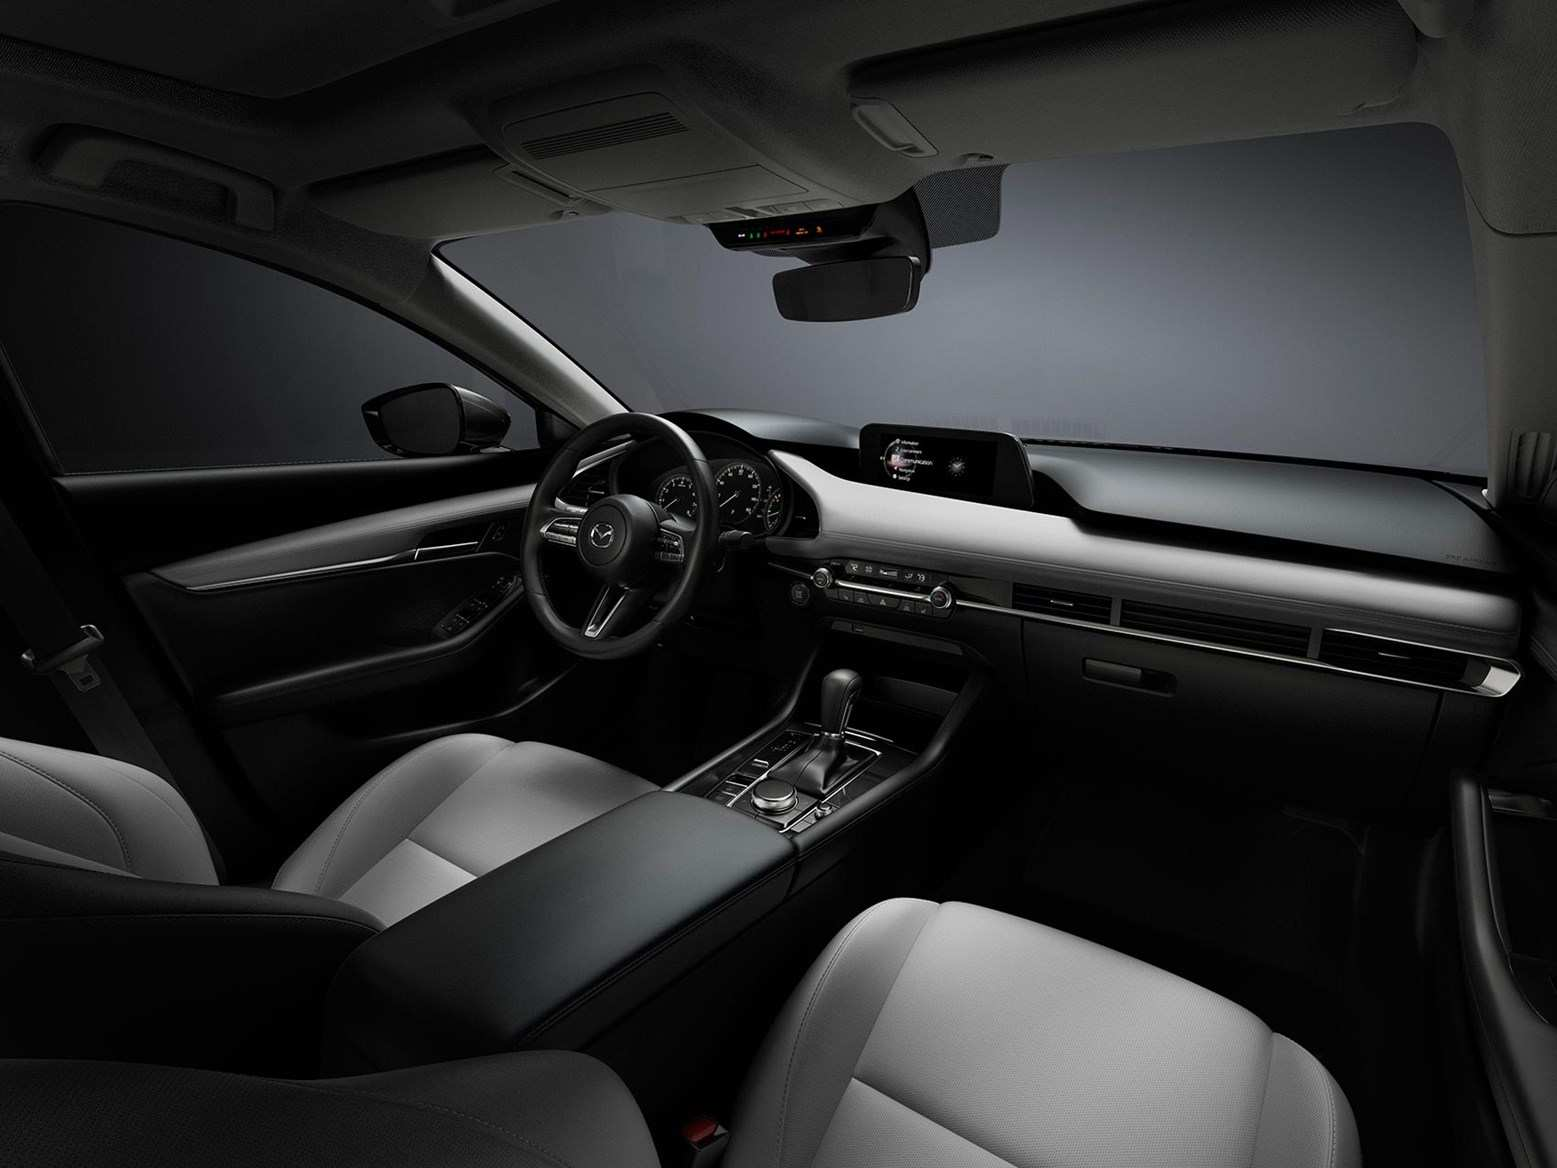 66 Gallery of The Mazda 2019 Engine New Interior Configurations for The Mazda 2019 Engine New Interior